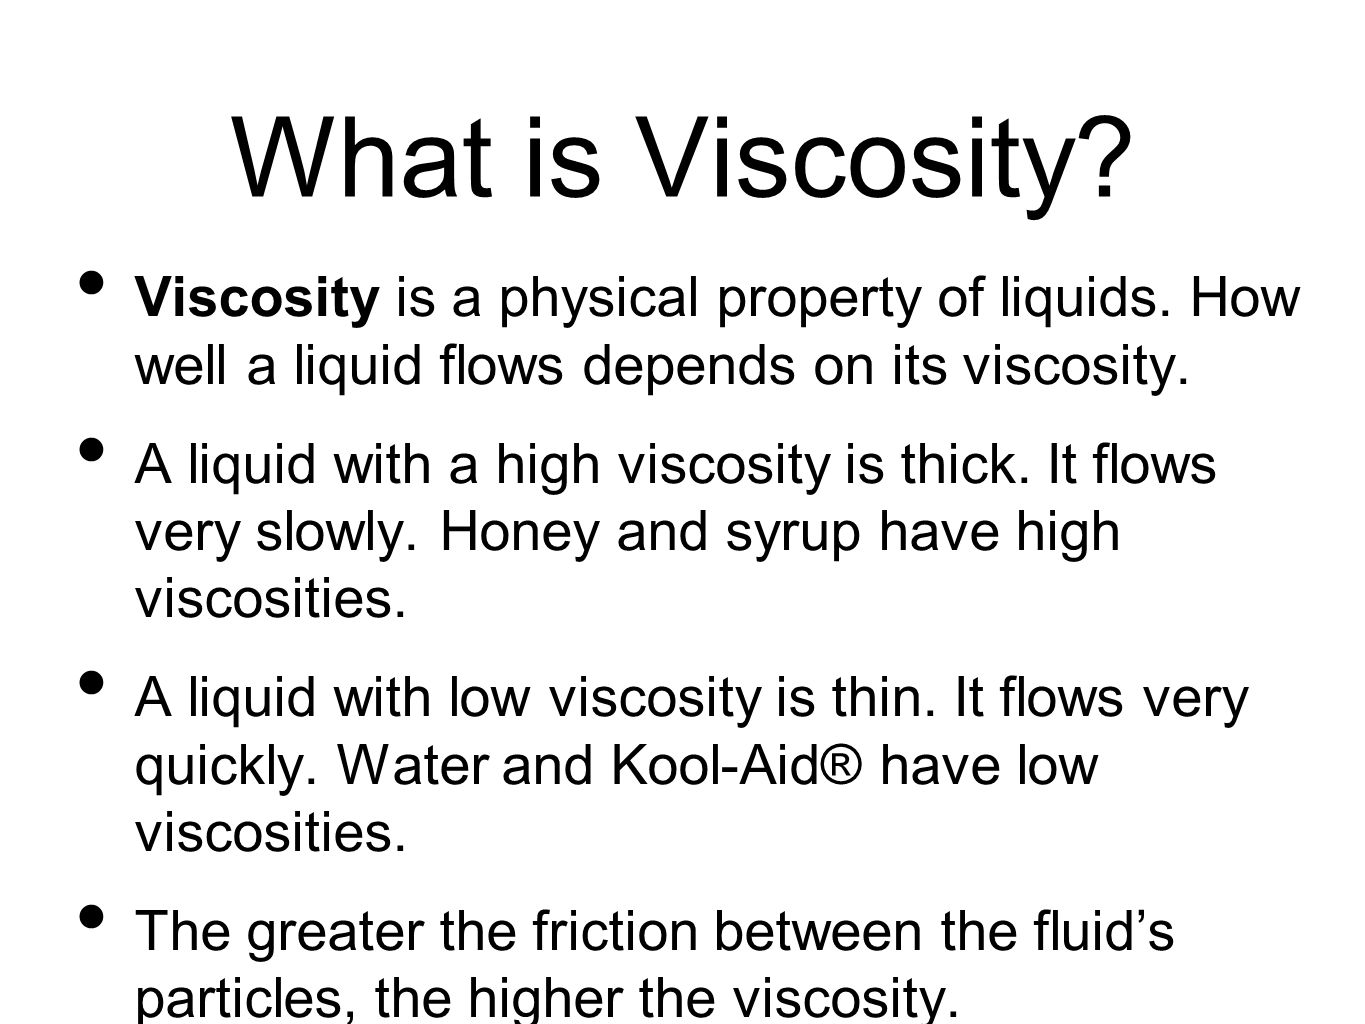 What is Viscosity Viscosity is a physical property of liquids. How well a liquid flows depends on its viscosity.